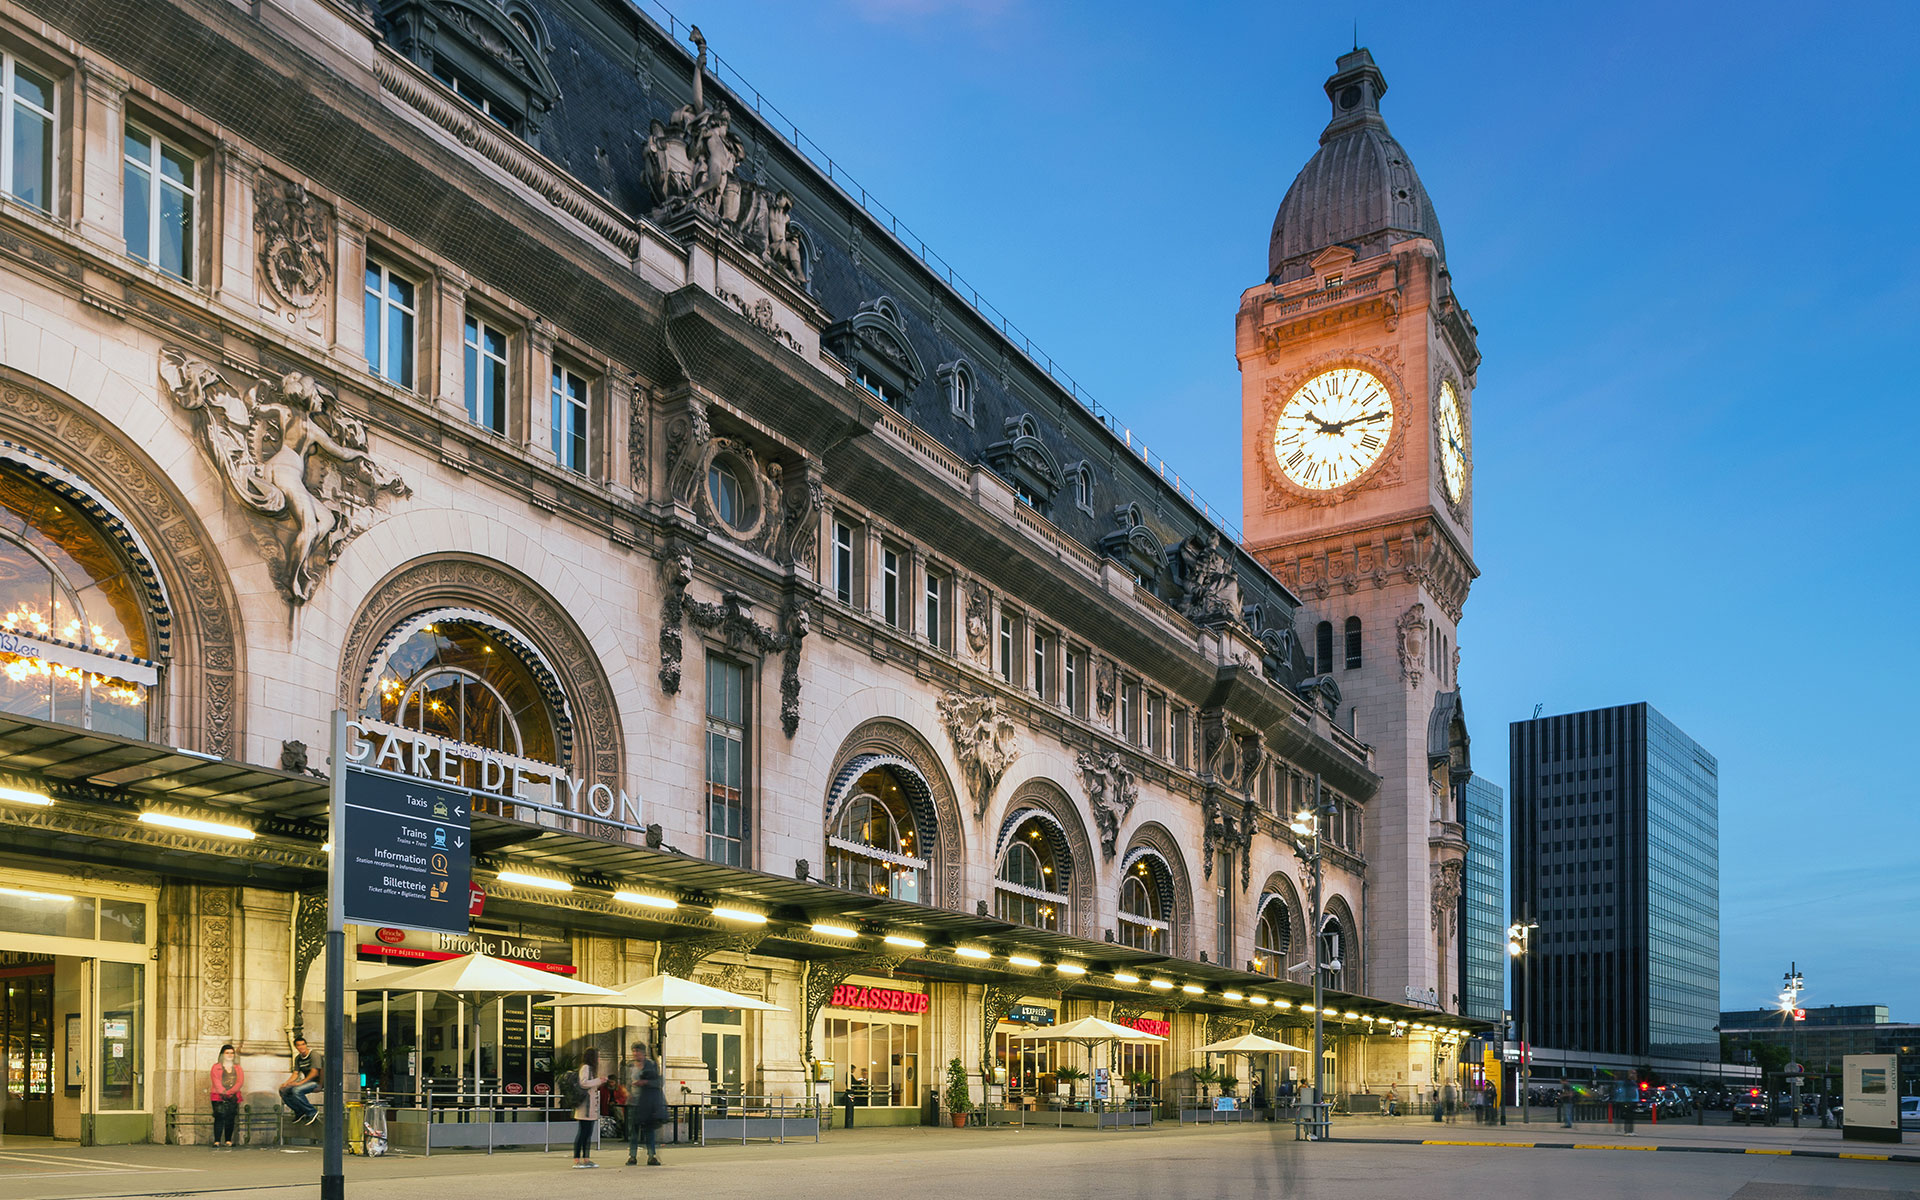 Paris Gare de Lyon (photo © Crobard / dreamstime.com)